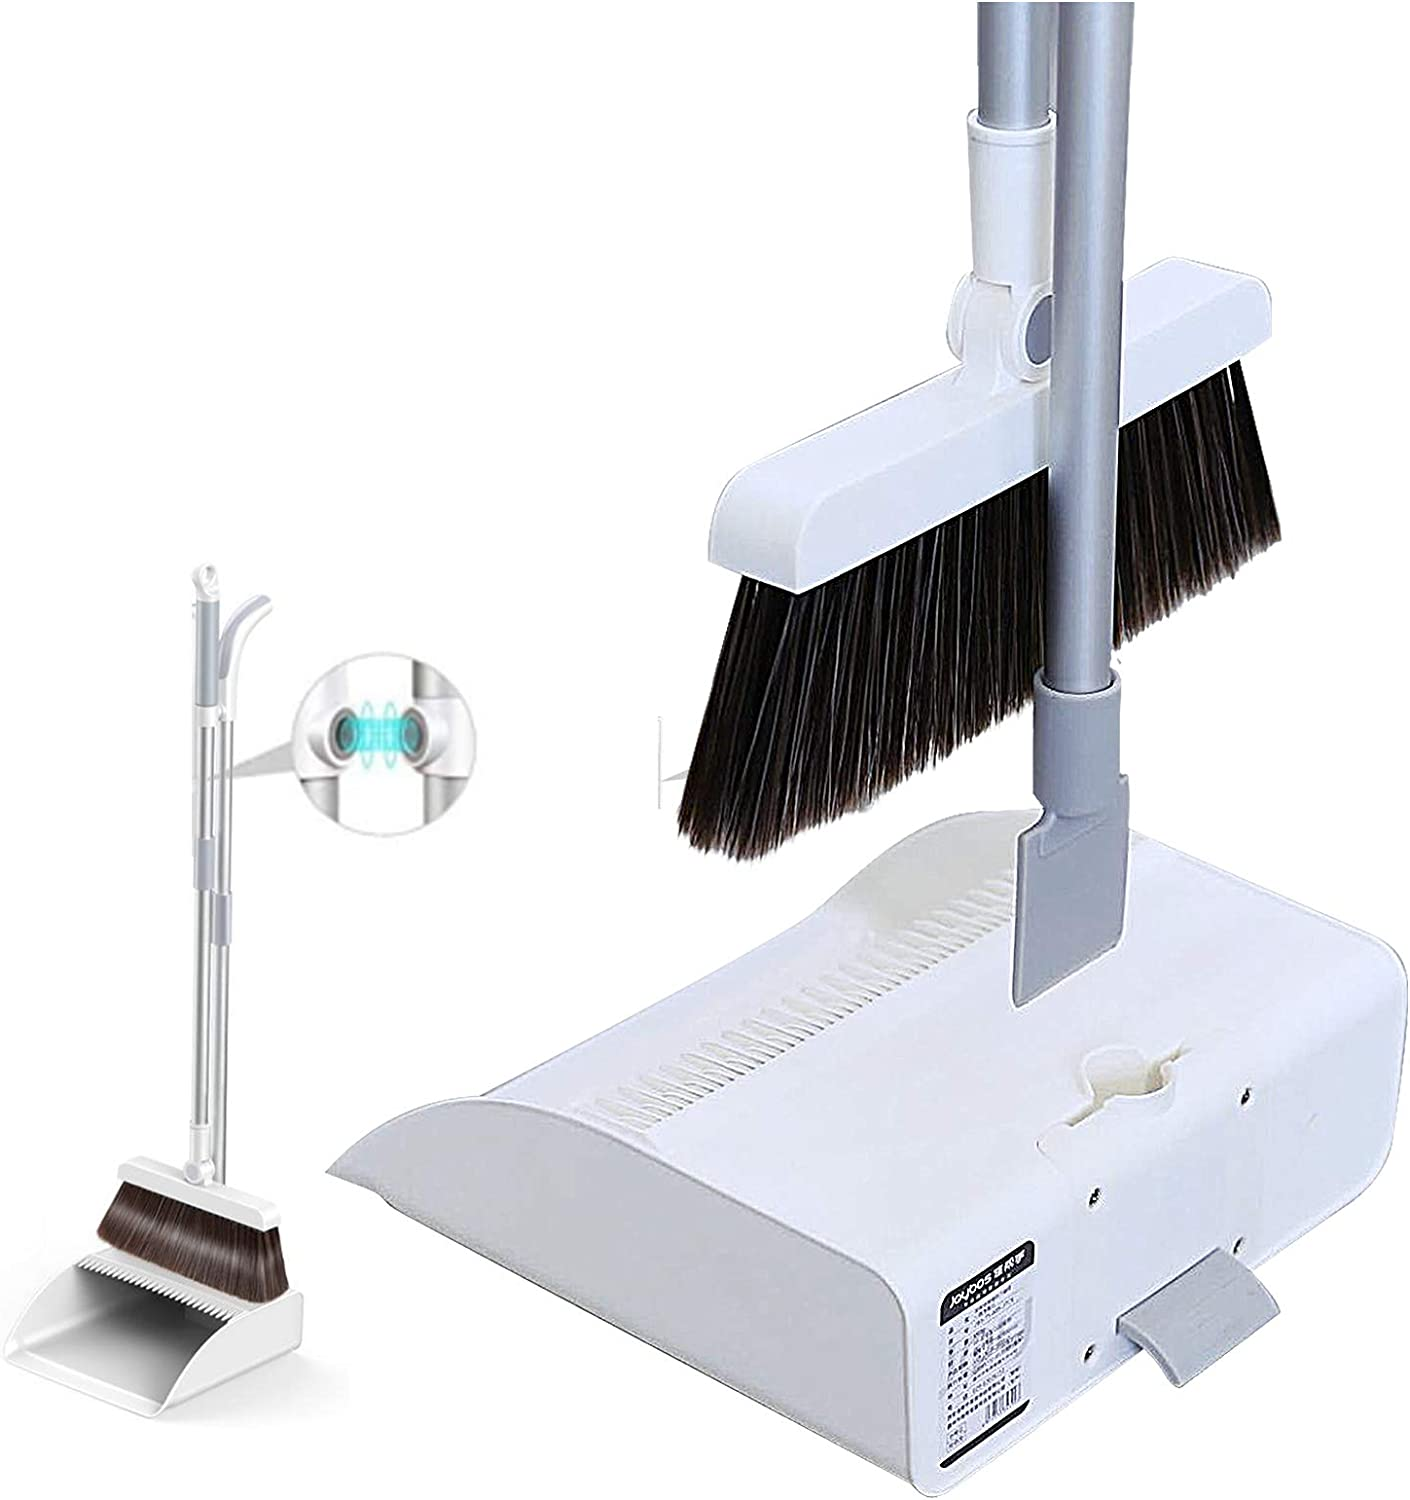 Broom and Dustpan Set,Orient P&E 3in1 180°Rotating Broom Magnetic Automatic Buckle Dustpan Broom Combo with Scraper for Home Kitchen Room Office Lobby Floor Pets Use